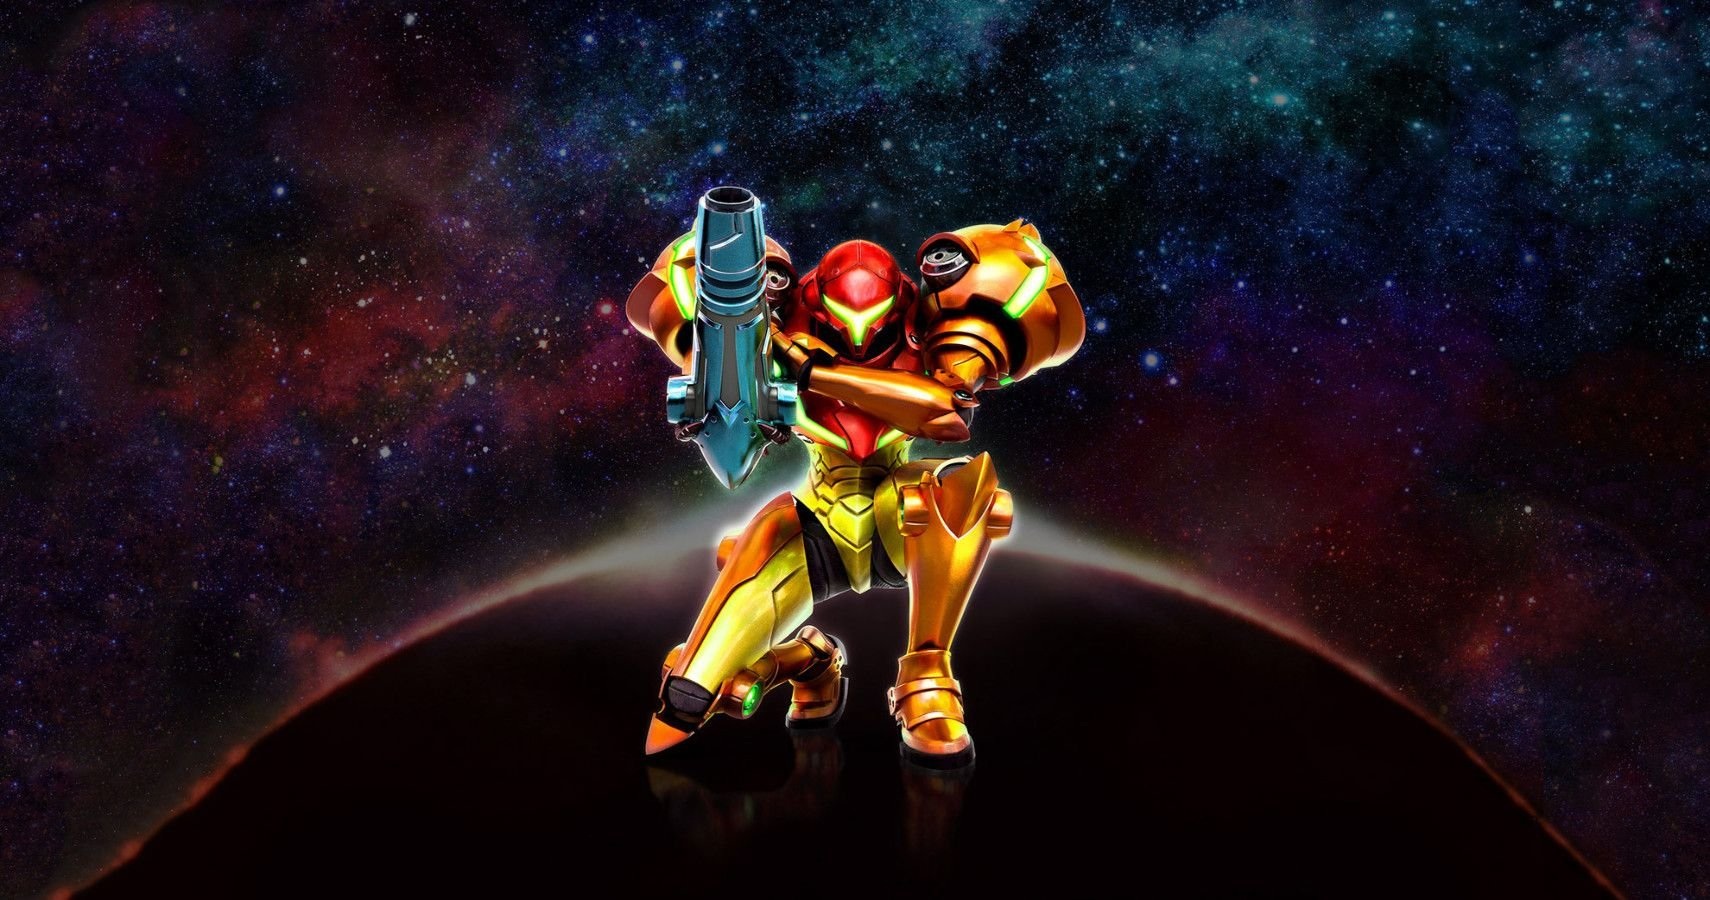 Insider Claims Nintendo Wouldn't Give Epic The Rights To Samus In Fortnite